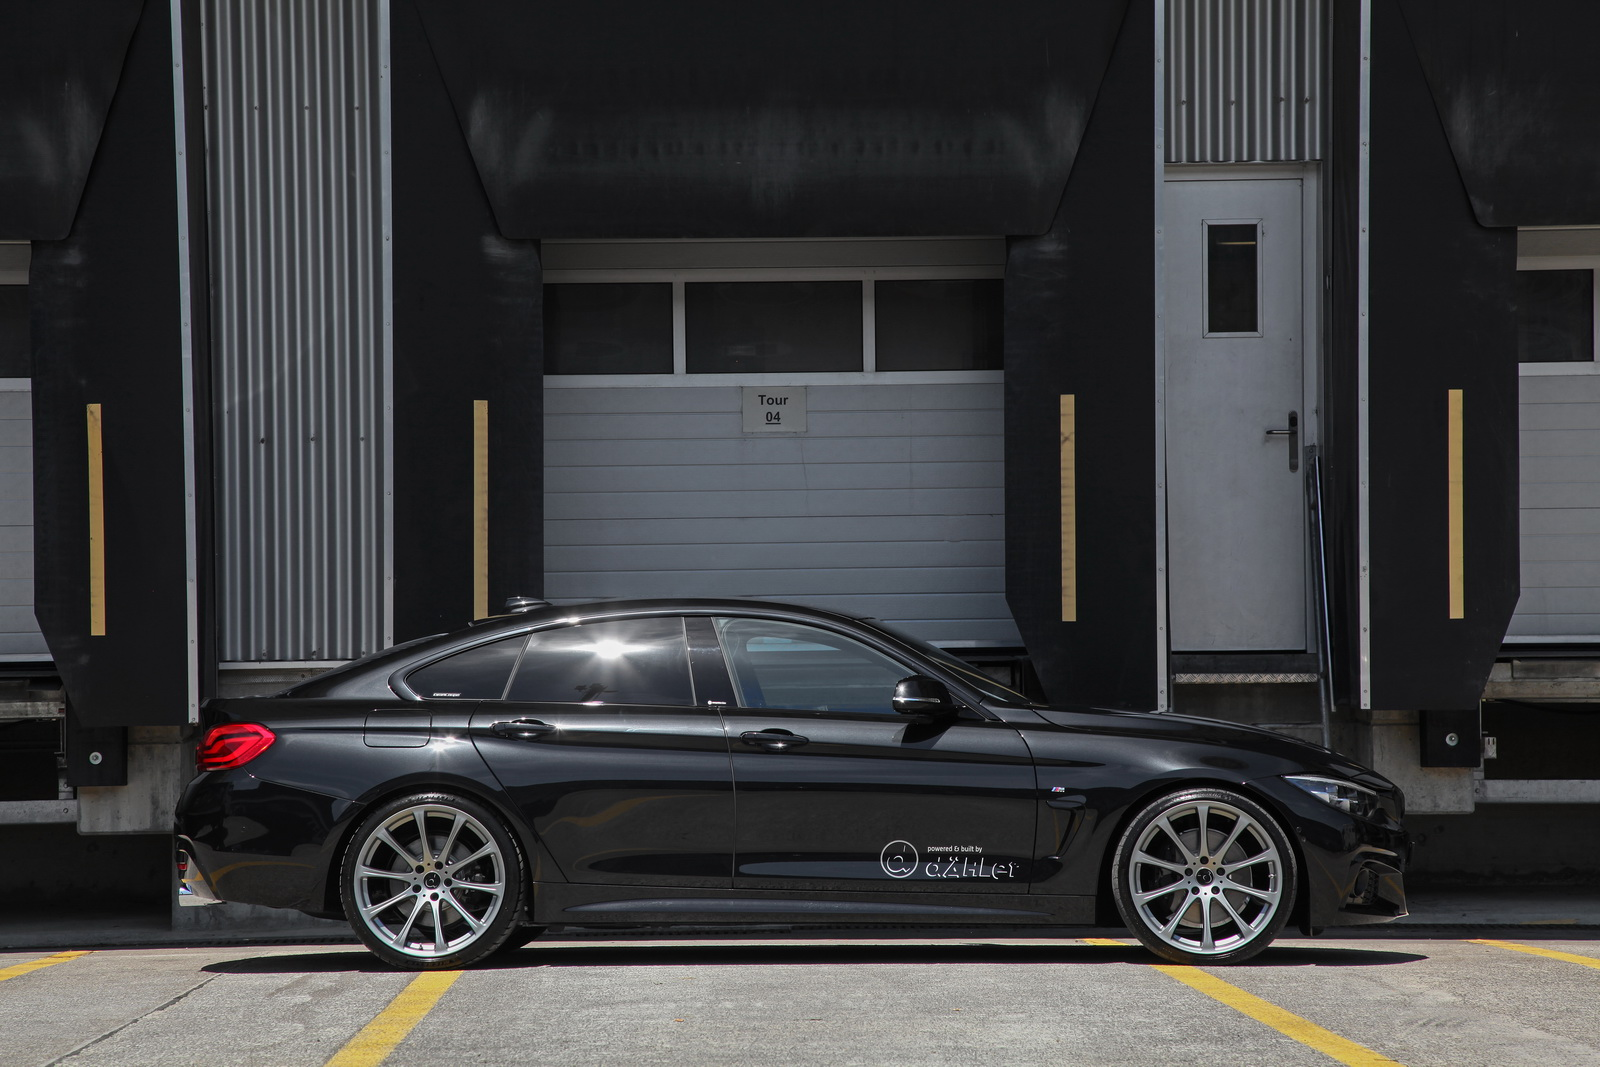 bmw-4-series-440i-dahler-tuning-15